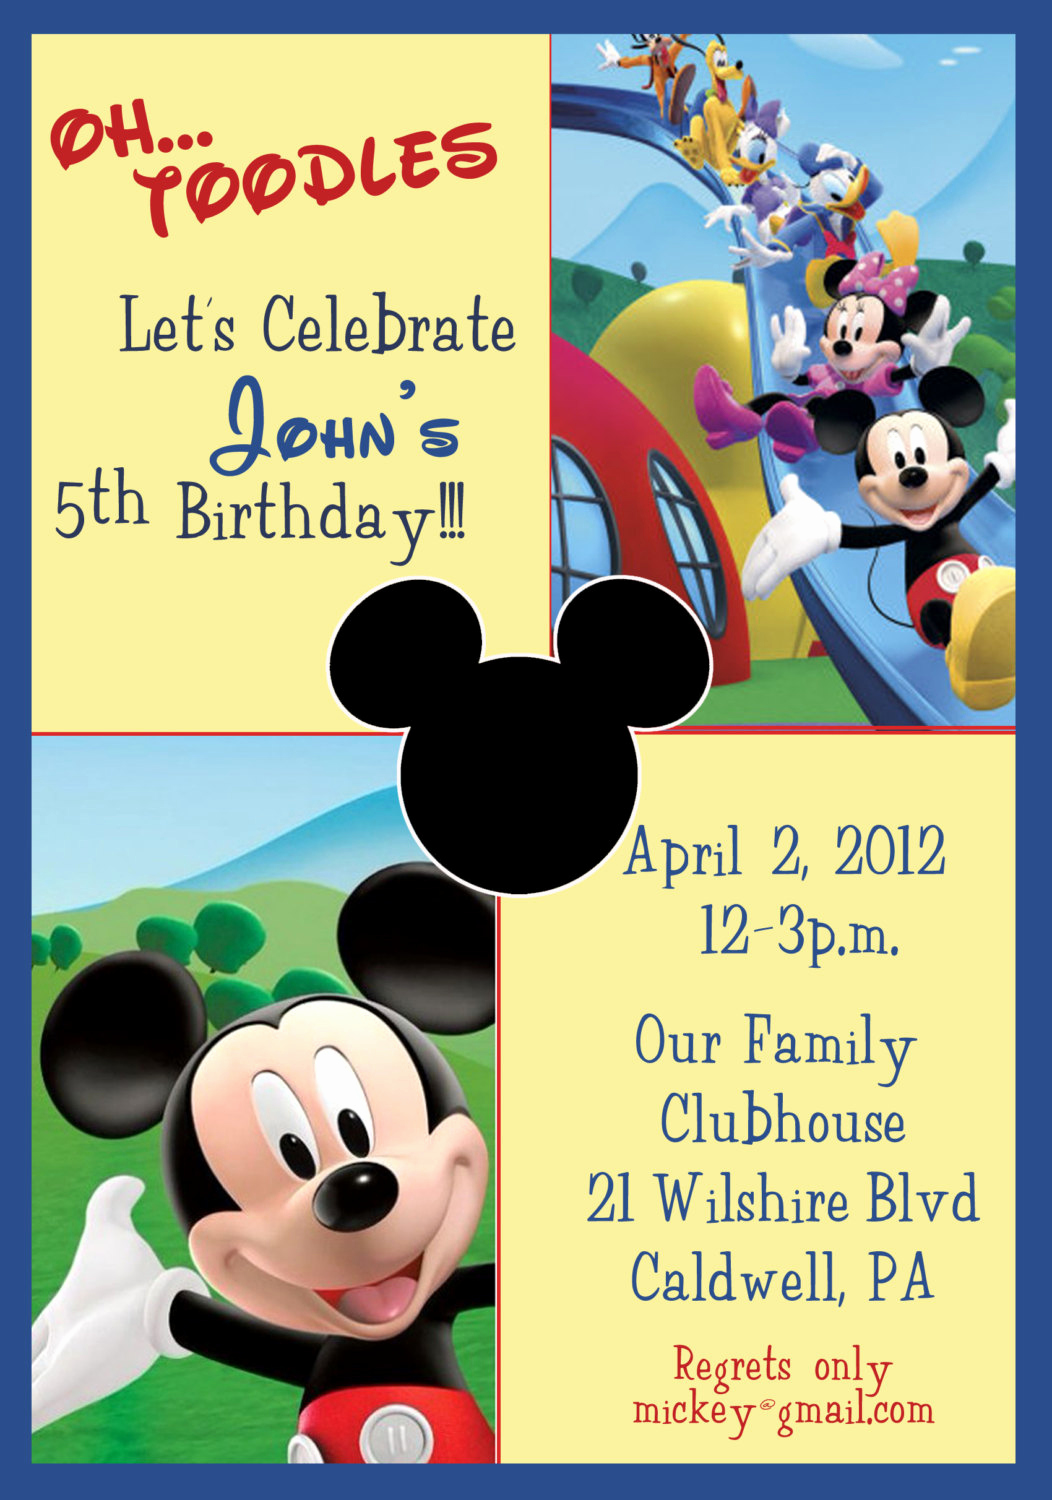 Mickey Mouse Clubhouse Invitations New Mickey Mouse Clubhouse Birthday Invitations Mickey Mouse